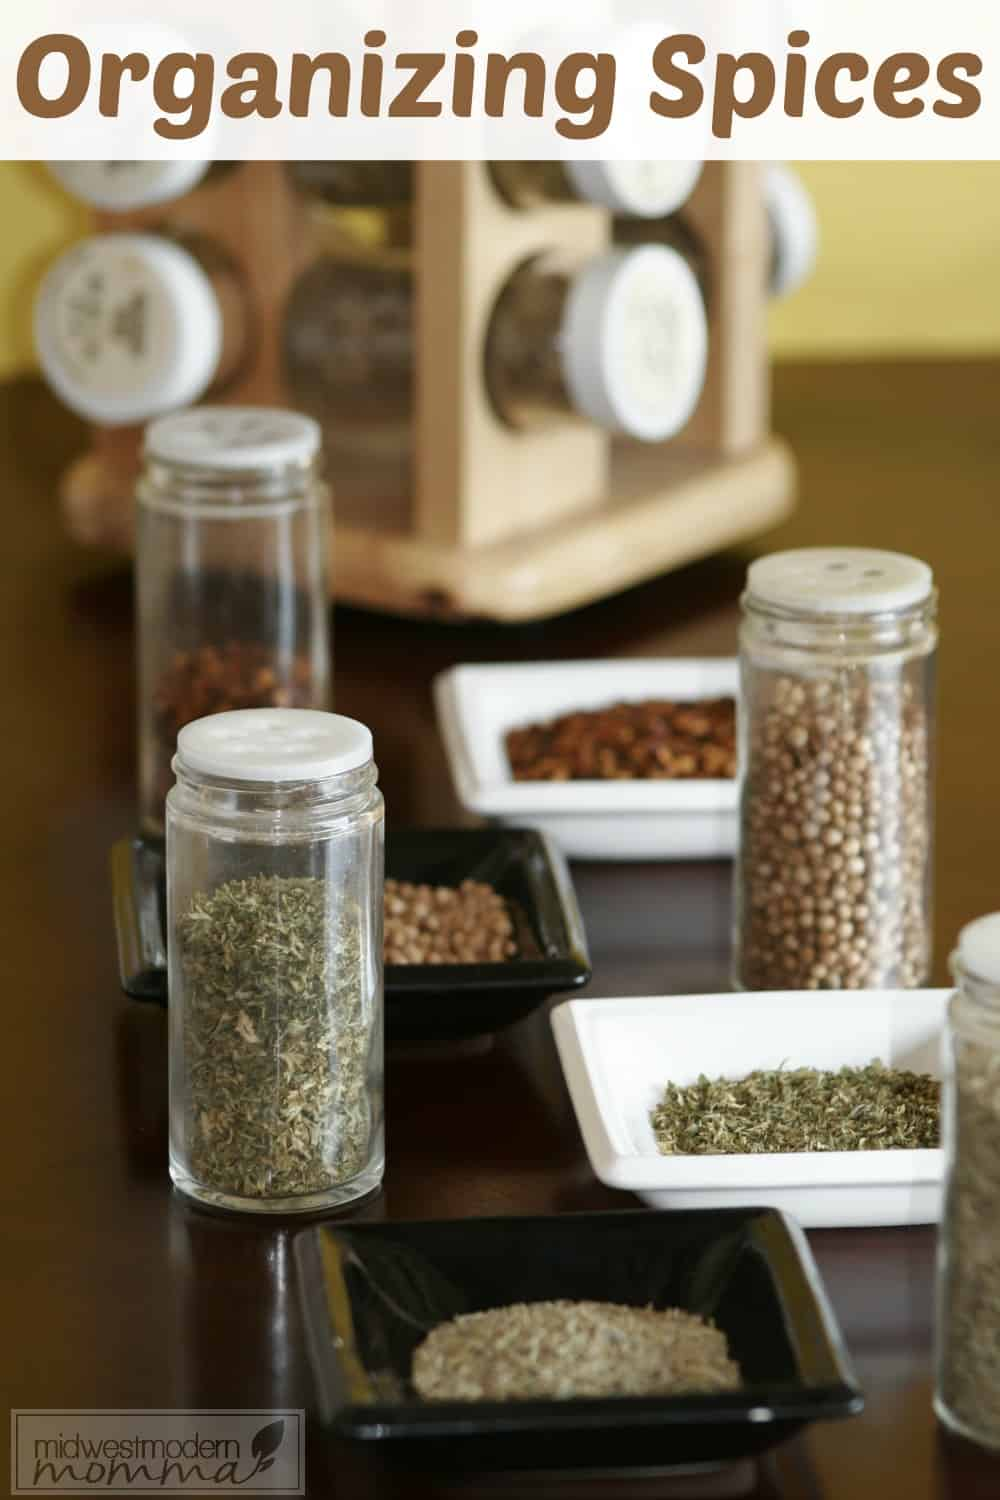 Tips for Organizing Spices